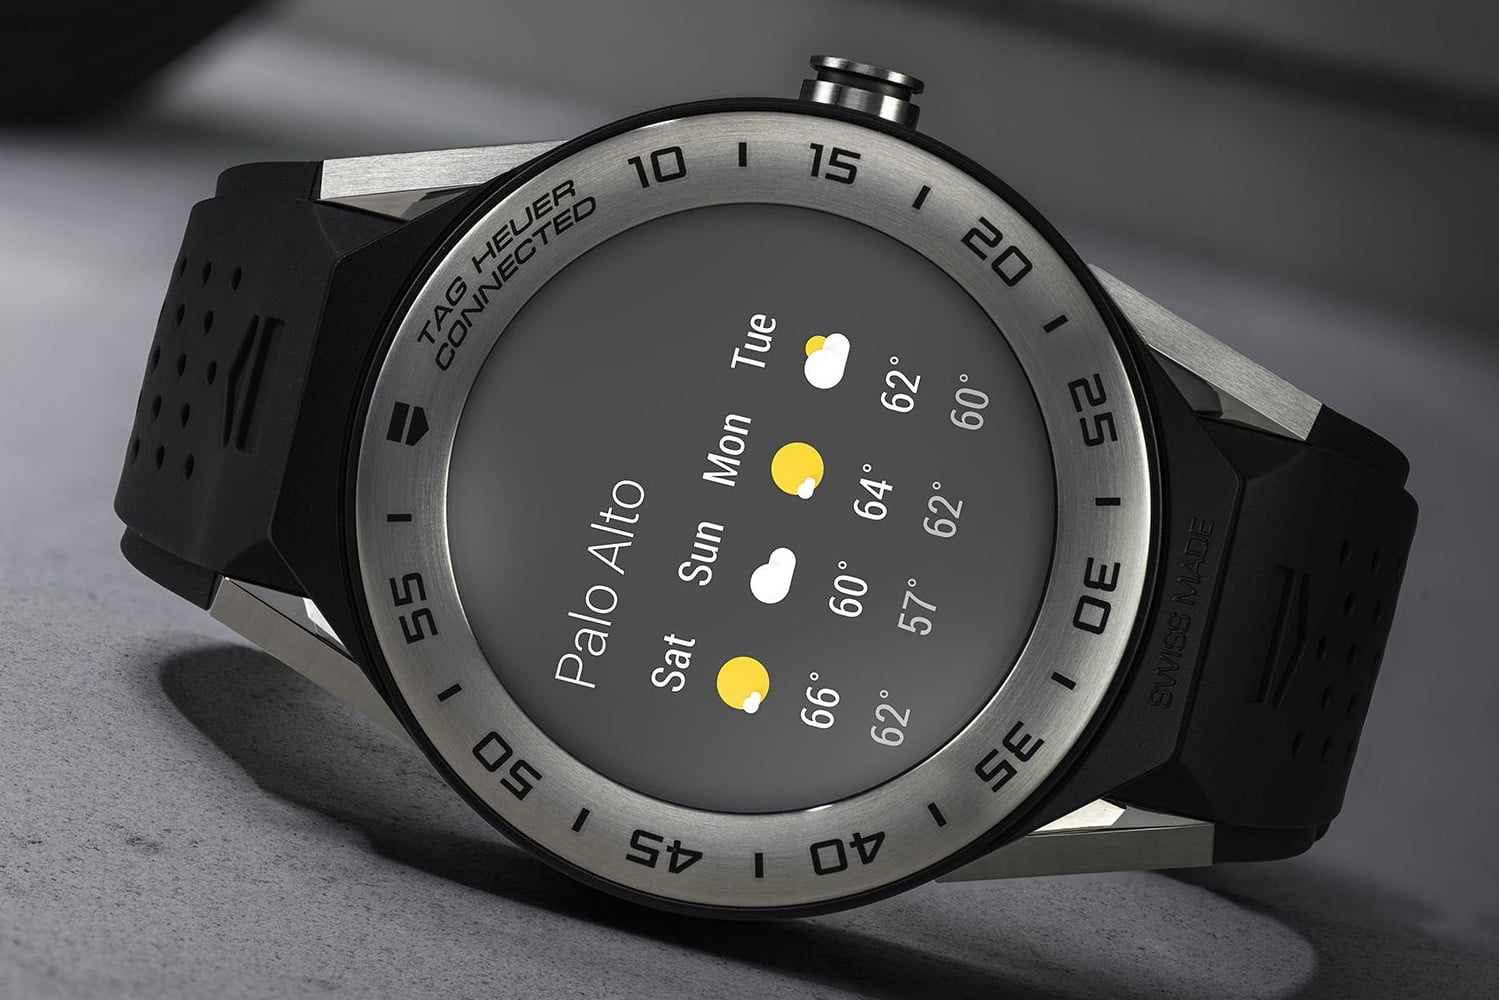 Tag Heuer shrinks the size and price tag for its new Android Wear smartwatch